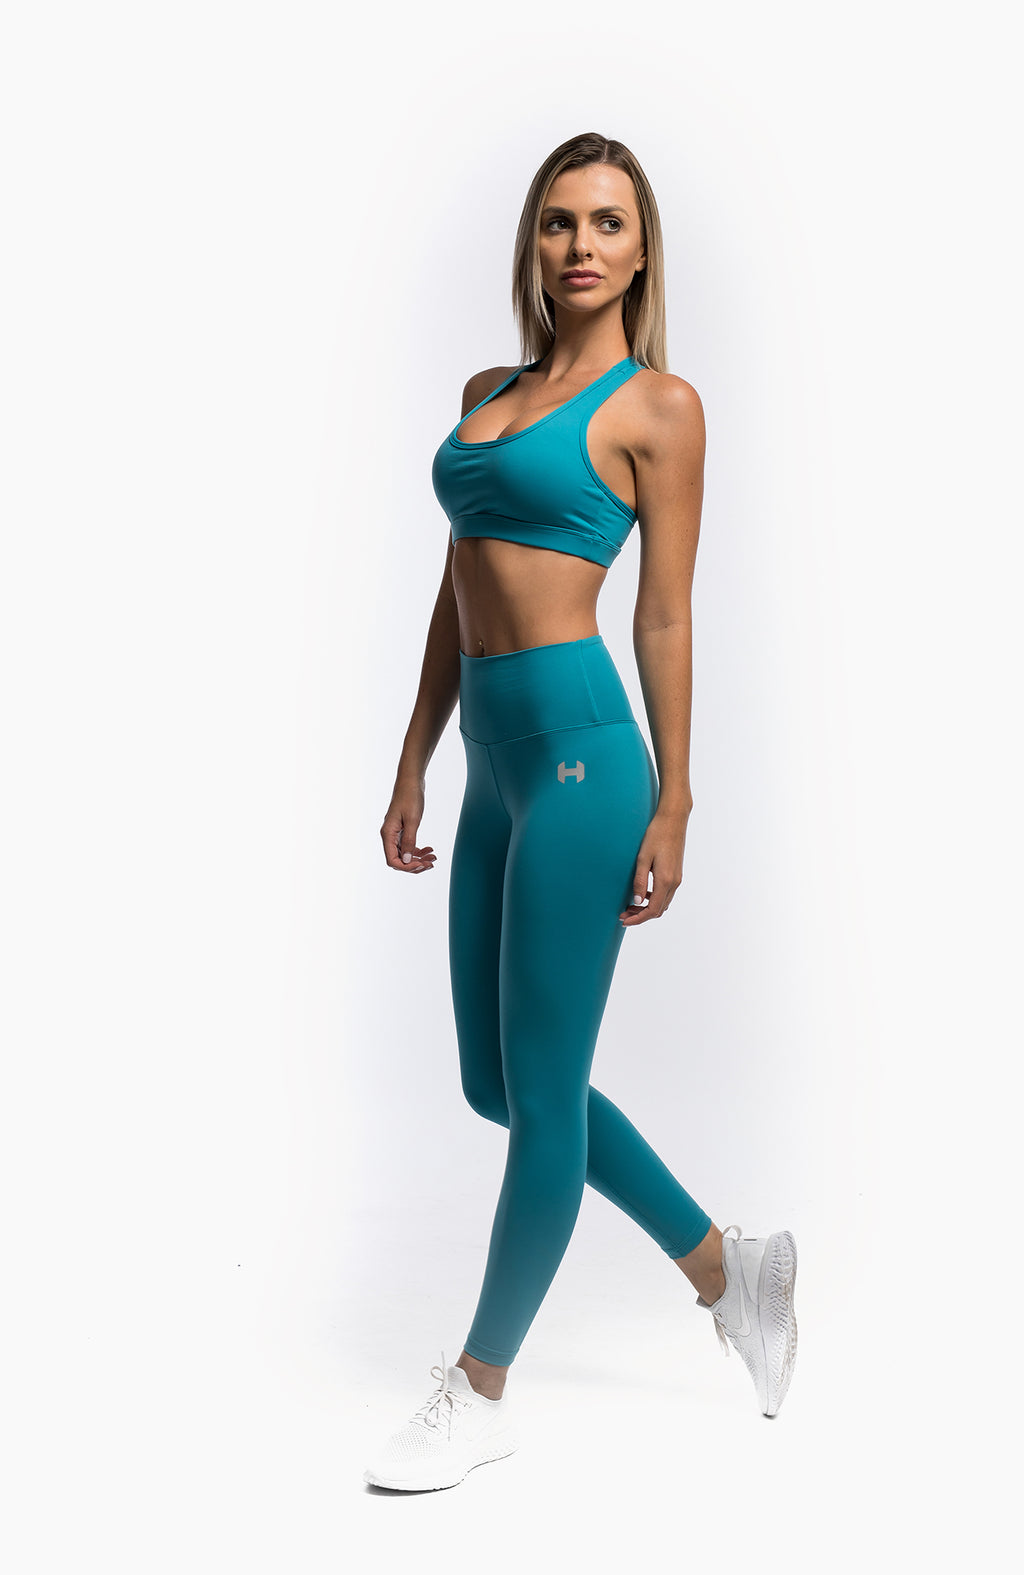 FLOW BRA - TIFFANY - hustletics.com